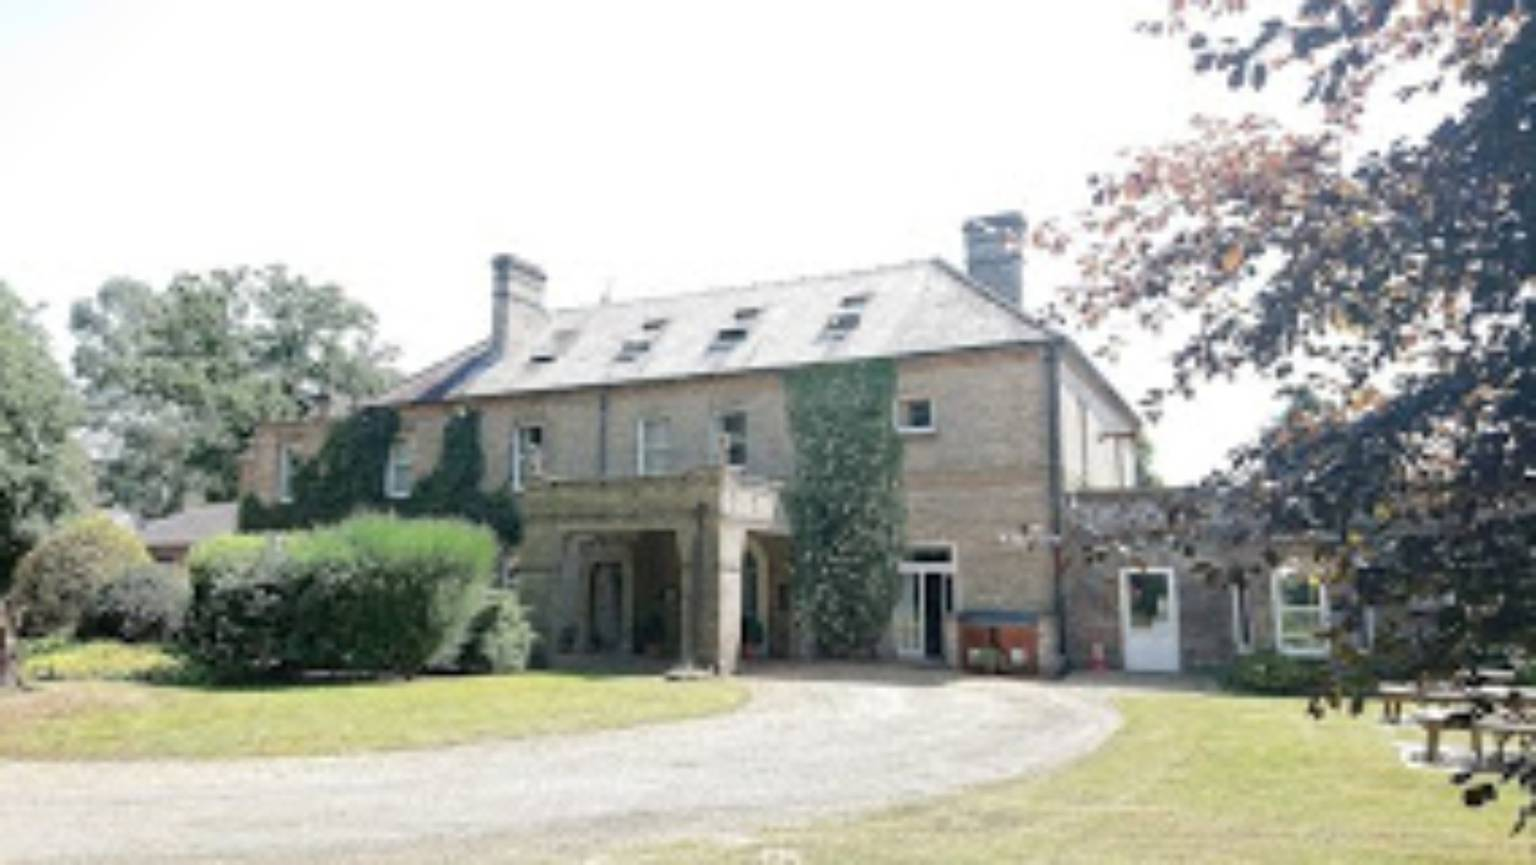 A large brick building with grass in front of a house at Broom Hall Country Hotel.